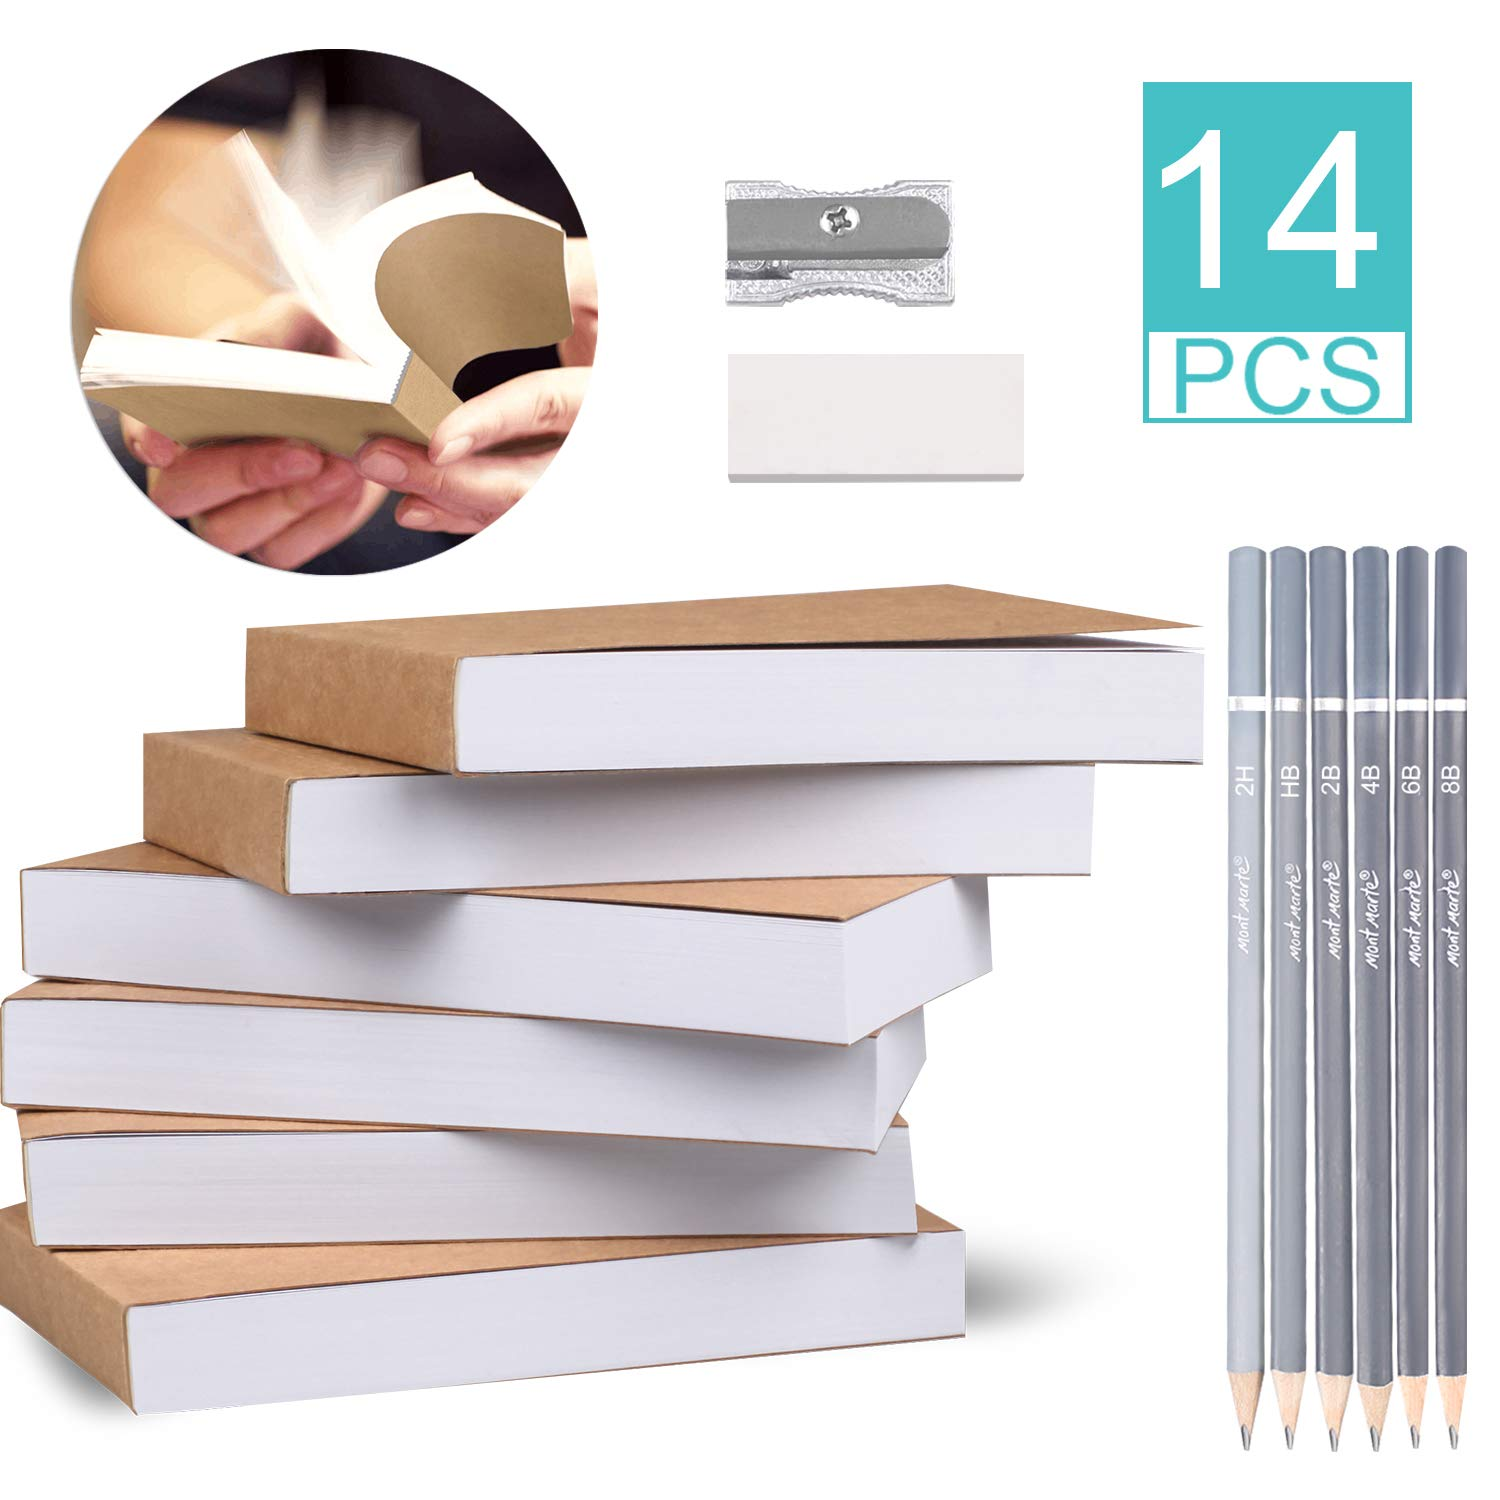 4.5/'/' x 2.5/'/' for Animation 200 Pages // 100 Sheets Flipbook Paper and 8 Pcs Drawing Set for Kids /& Adults Sketching Flip Book and Cartoon Creation Blank Flipbooks 6 Pack